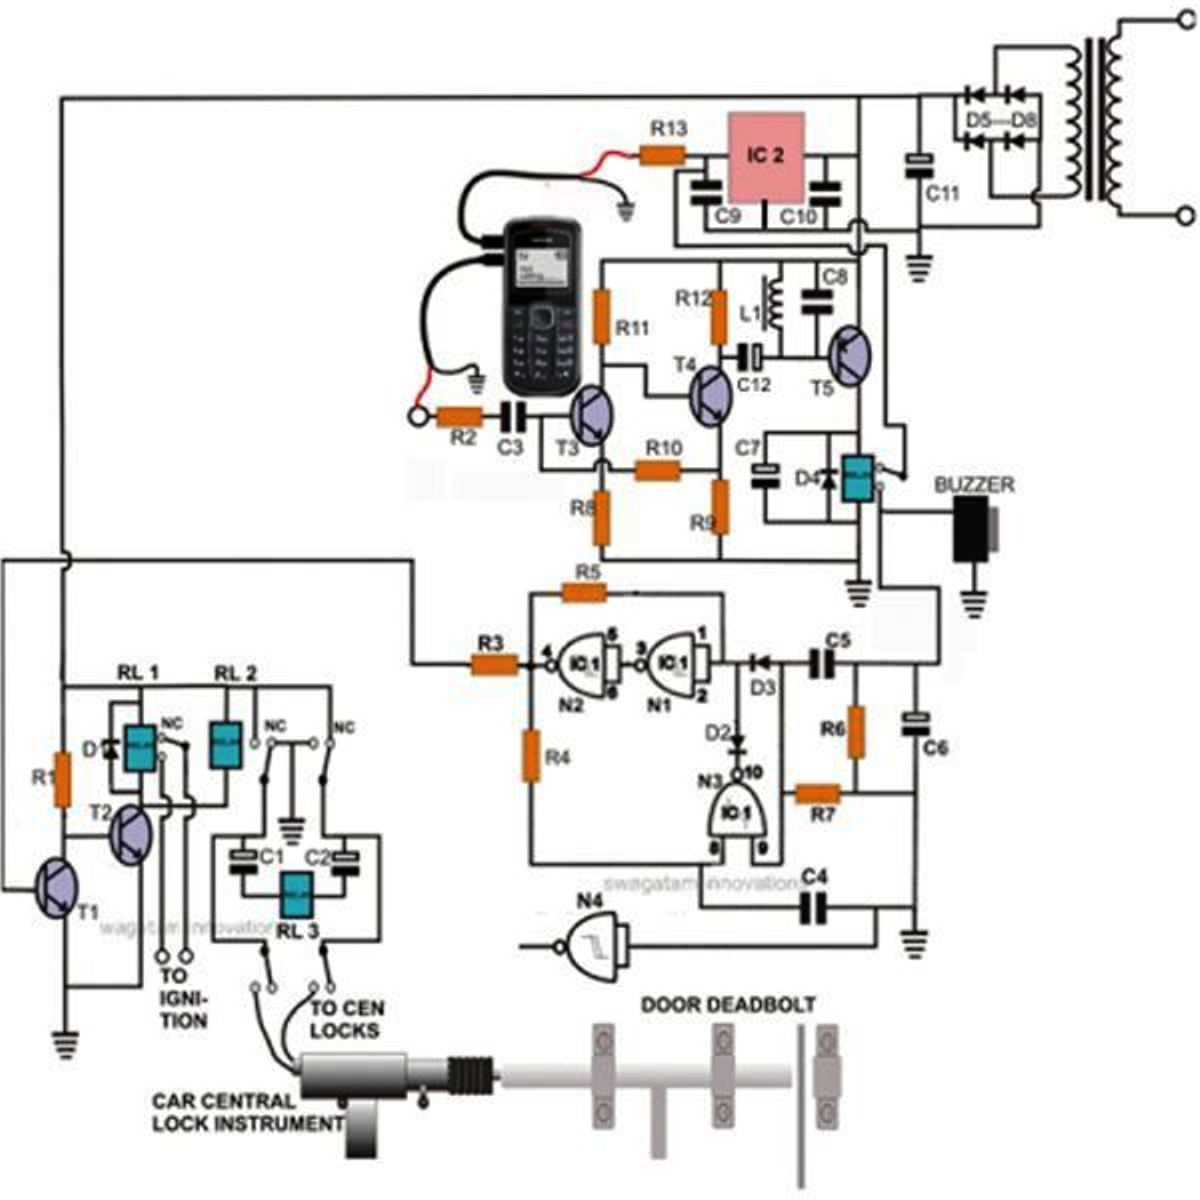 wiring diagram digital thermostat with How To Build Cell Phone Controlled Door on Modine Gas Heater Wiring Diagram in addition How To Build Cell Phone Controlled Door additionally Honeywell Wire Diagram further 544276 Aprilaire 600 W Wire Set Up as well Honeywell Aquastat Wiring Diagram Explained.